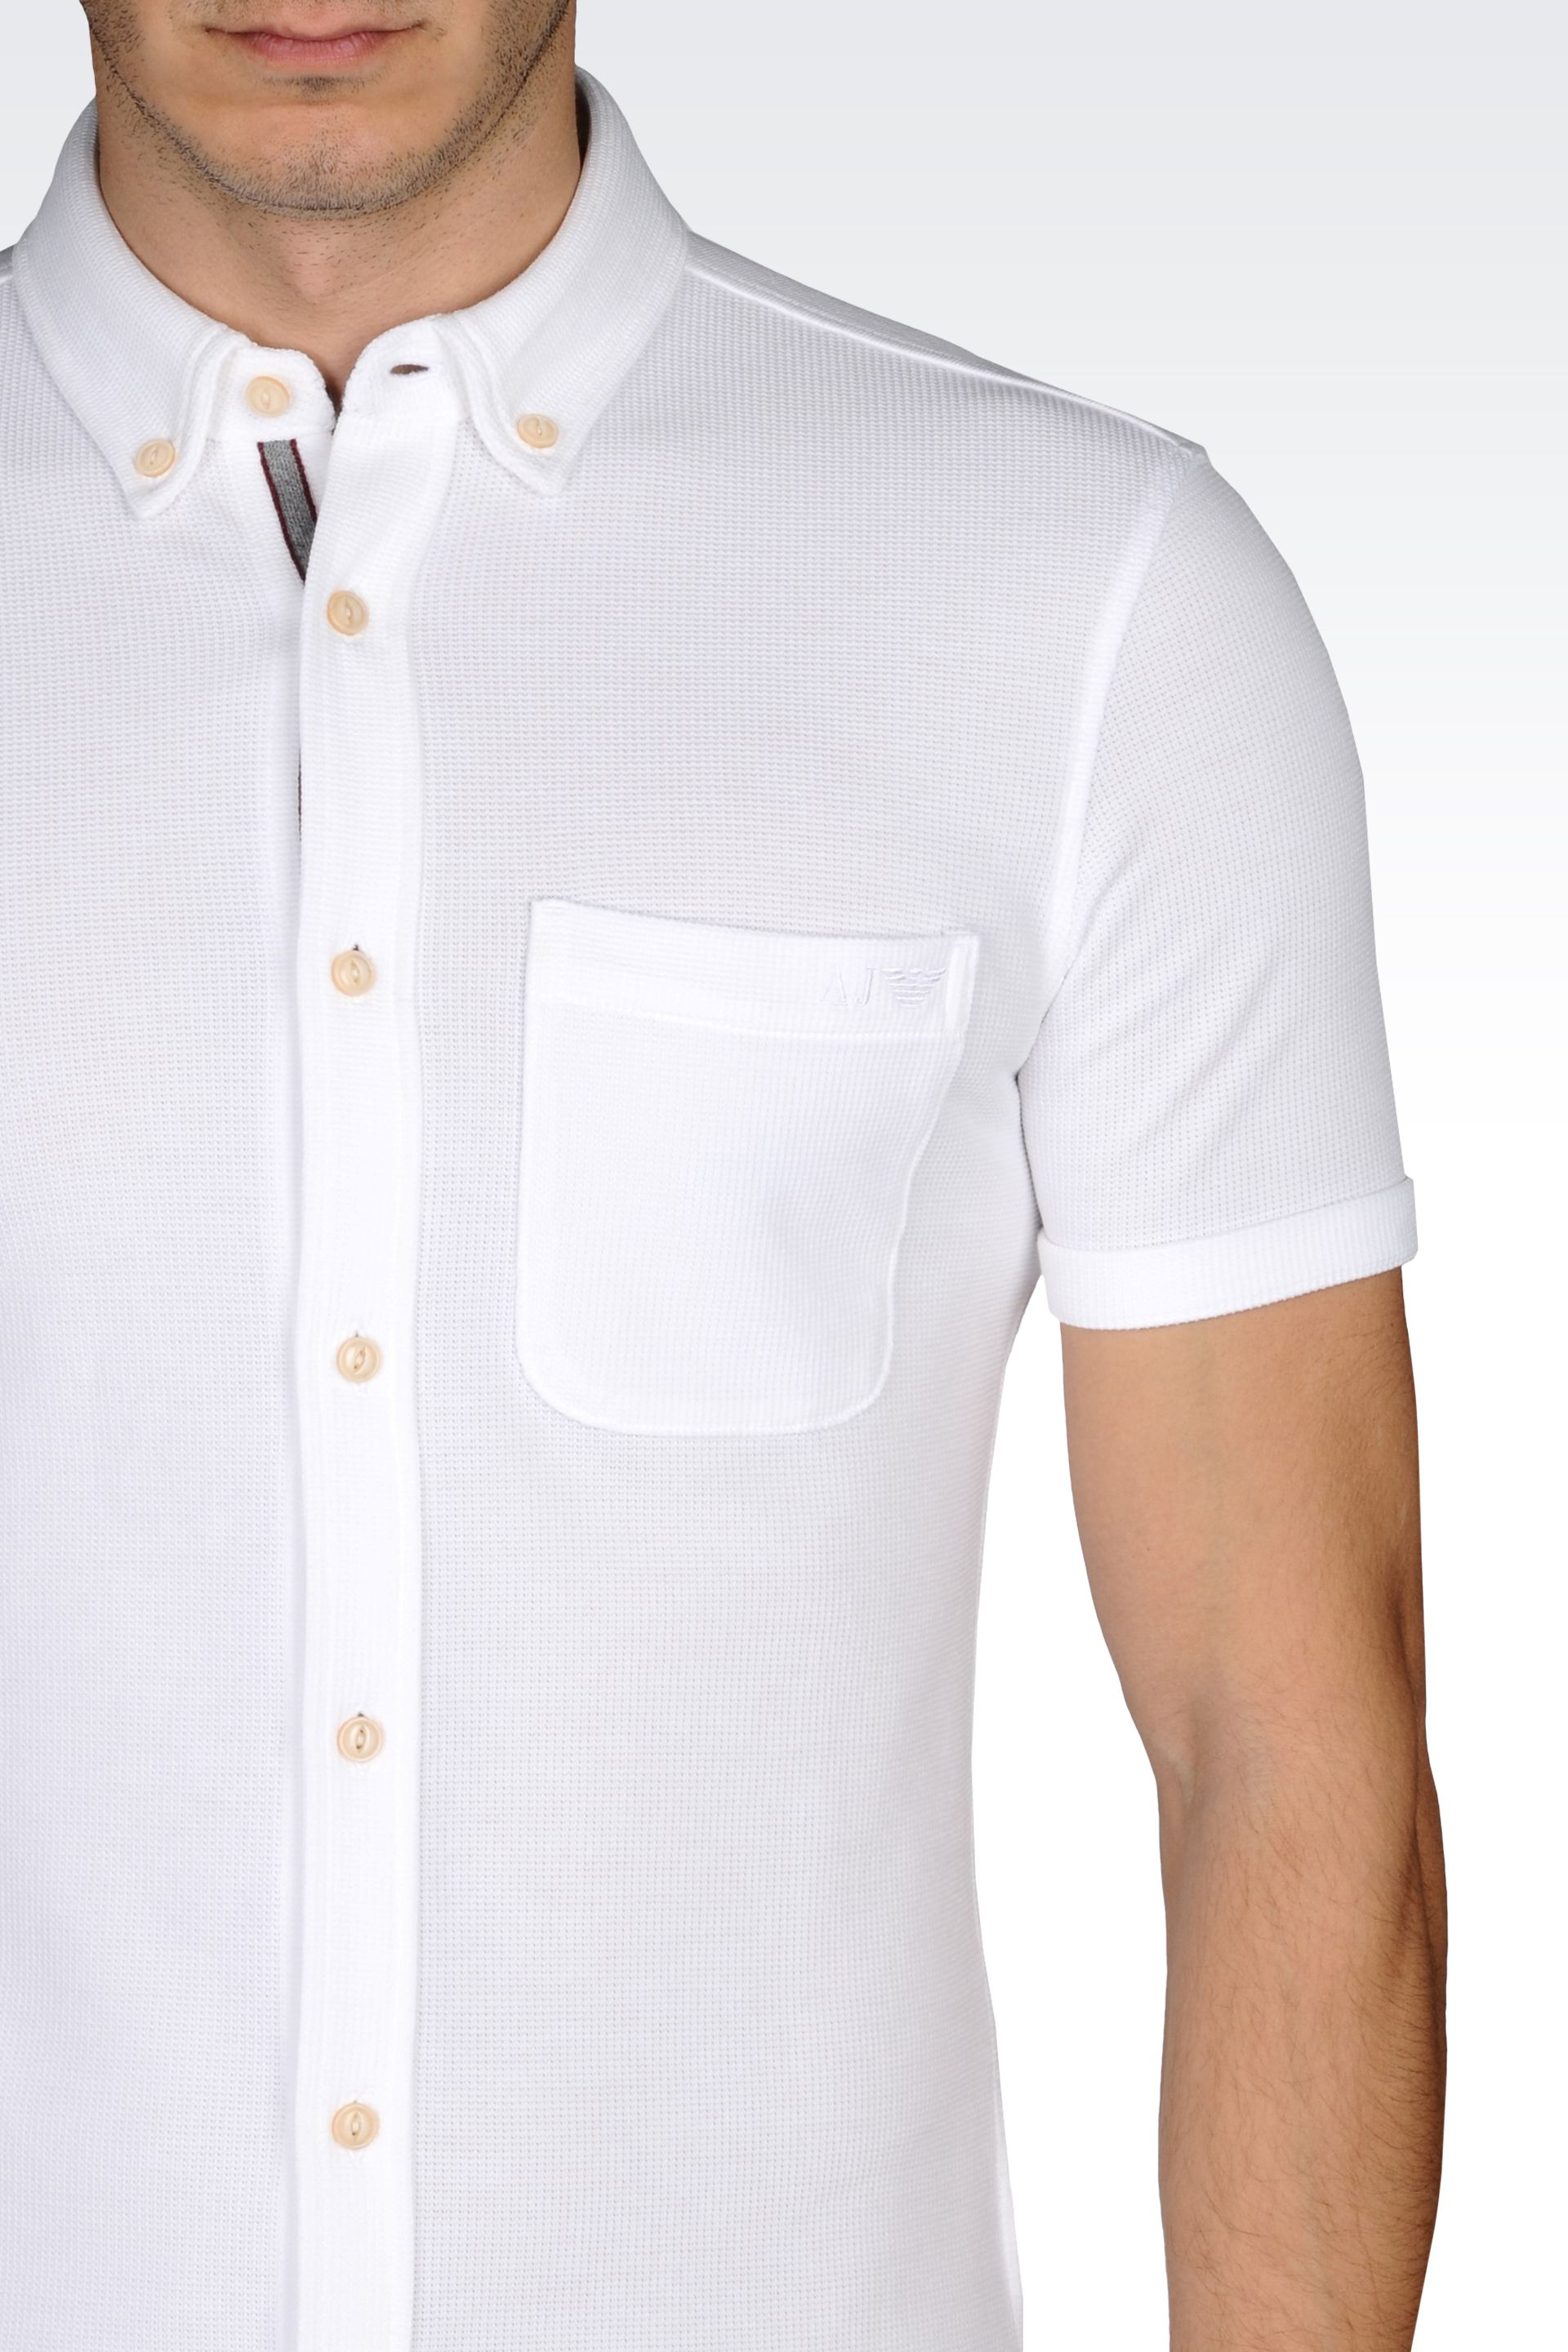 Armani Jeans Extra Slim Fit Shirt In Pique And Jersey In